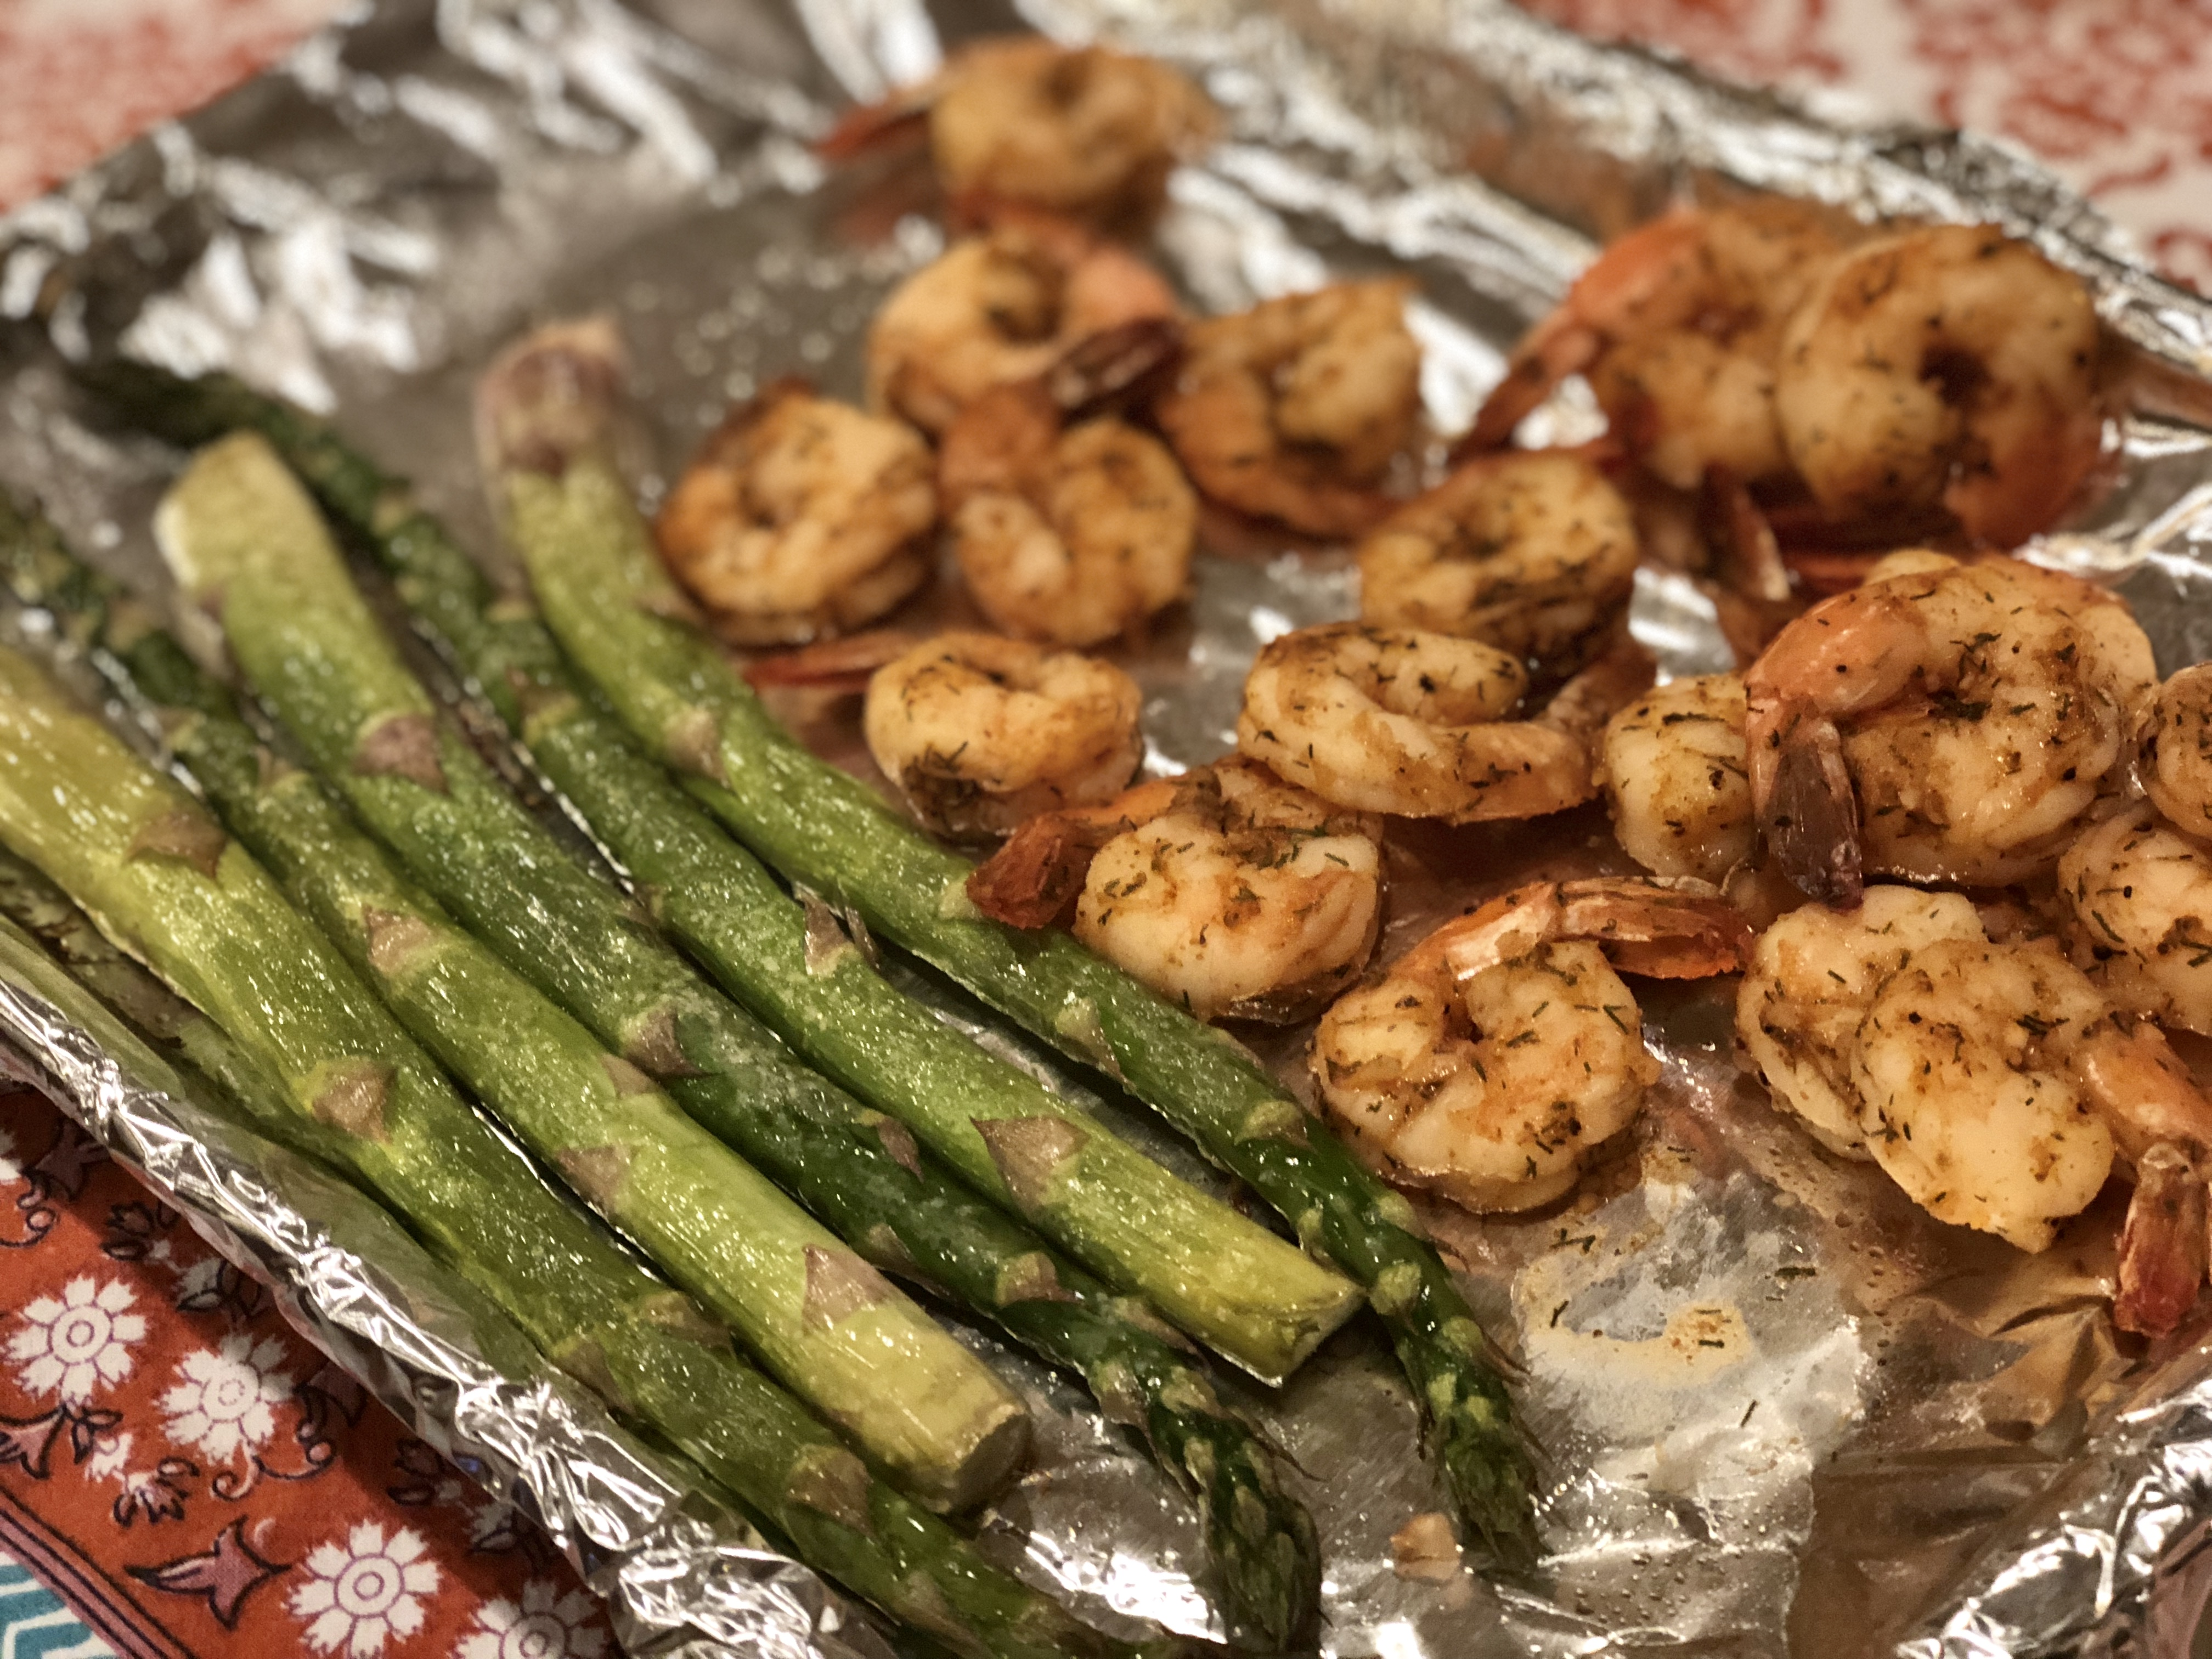 """Drizzle olive oil over asparagus spears, sprinkle with garlic, and arrange on one side of the pan, with shrimp on the other side, and top with olive oil and smoked paprika. Top asparagus and shrimp with cubed butter, bake, and drizzle with lemon juice. """"Have dinner ready in less than 30 minutes with this quick and easy one-pan roasted lemon butter shrimp and asparagus seasoned with garlic,"""" says Fioa."""